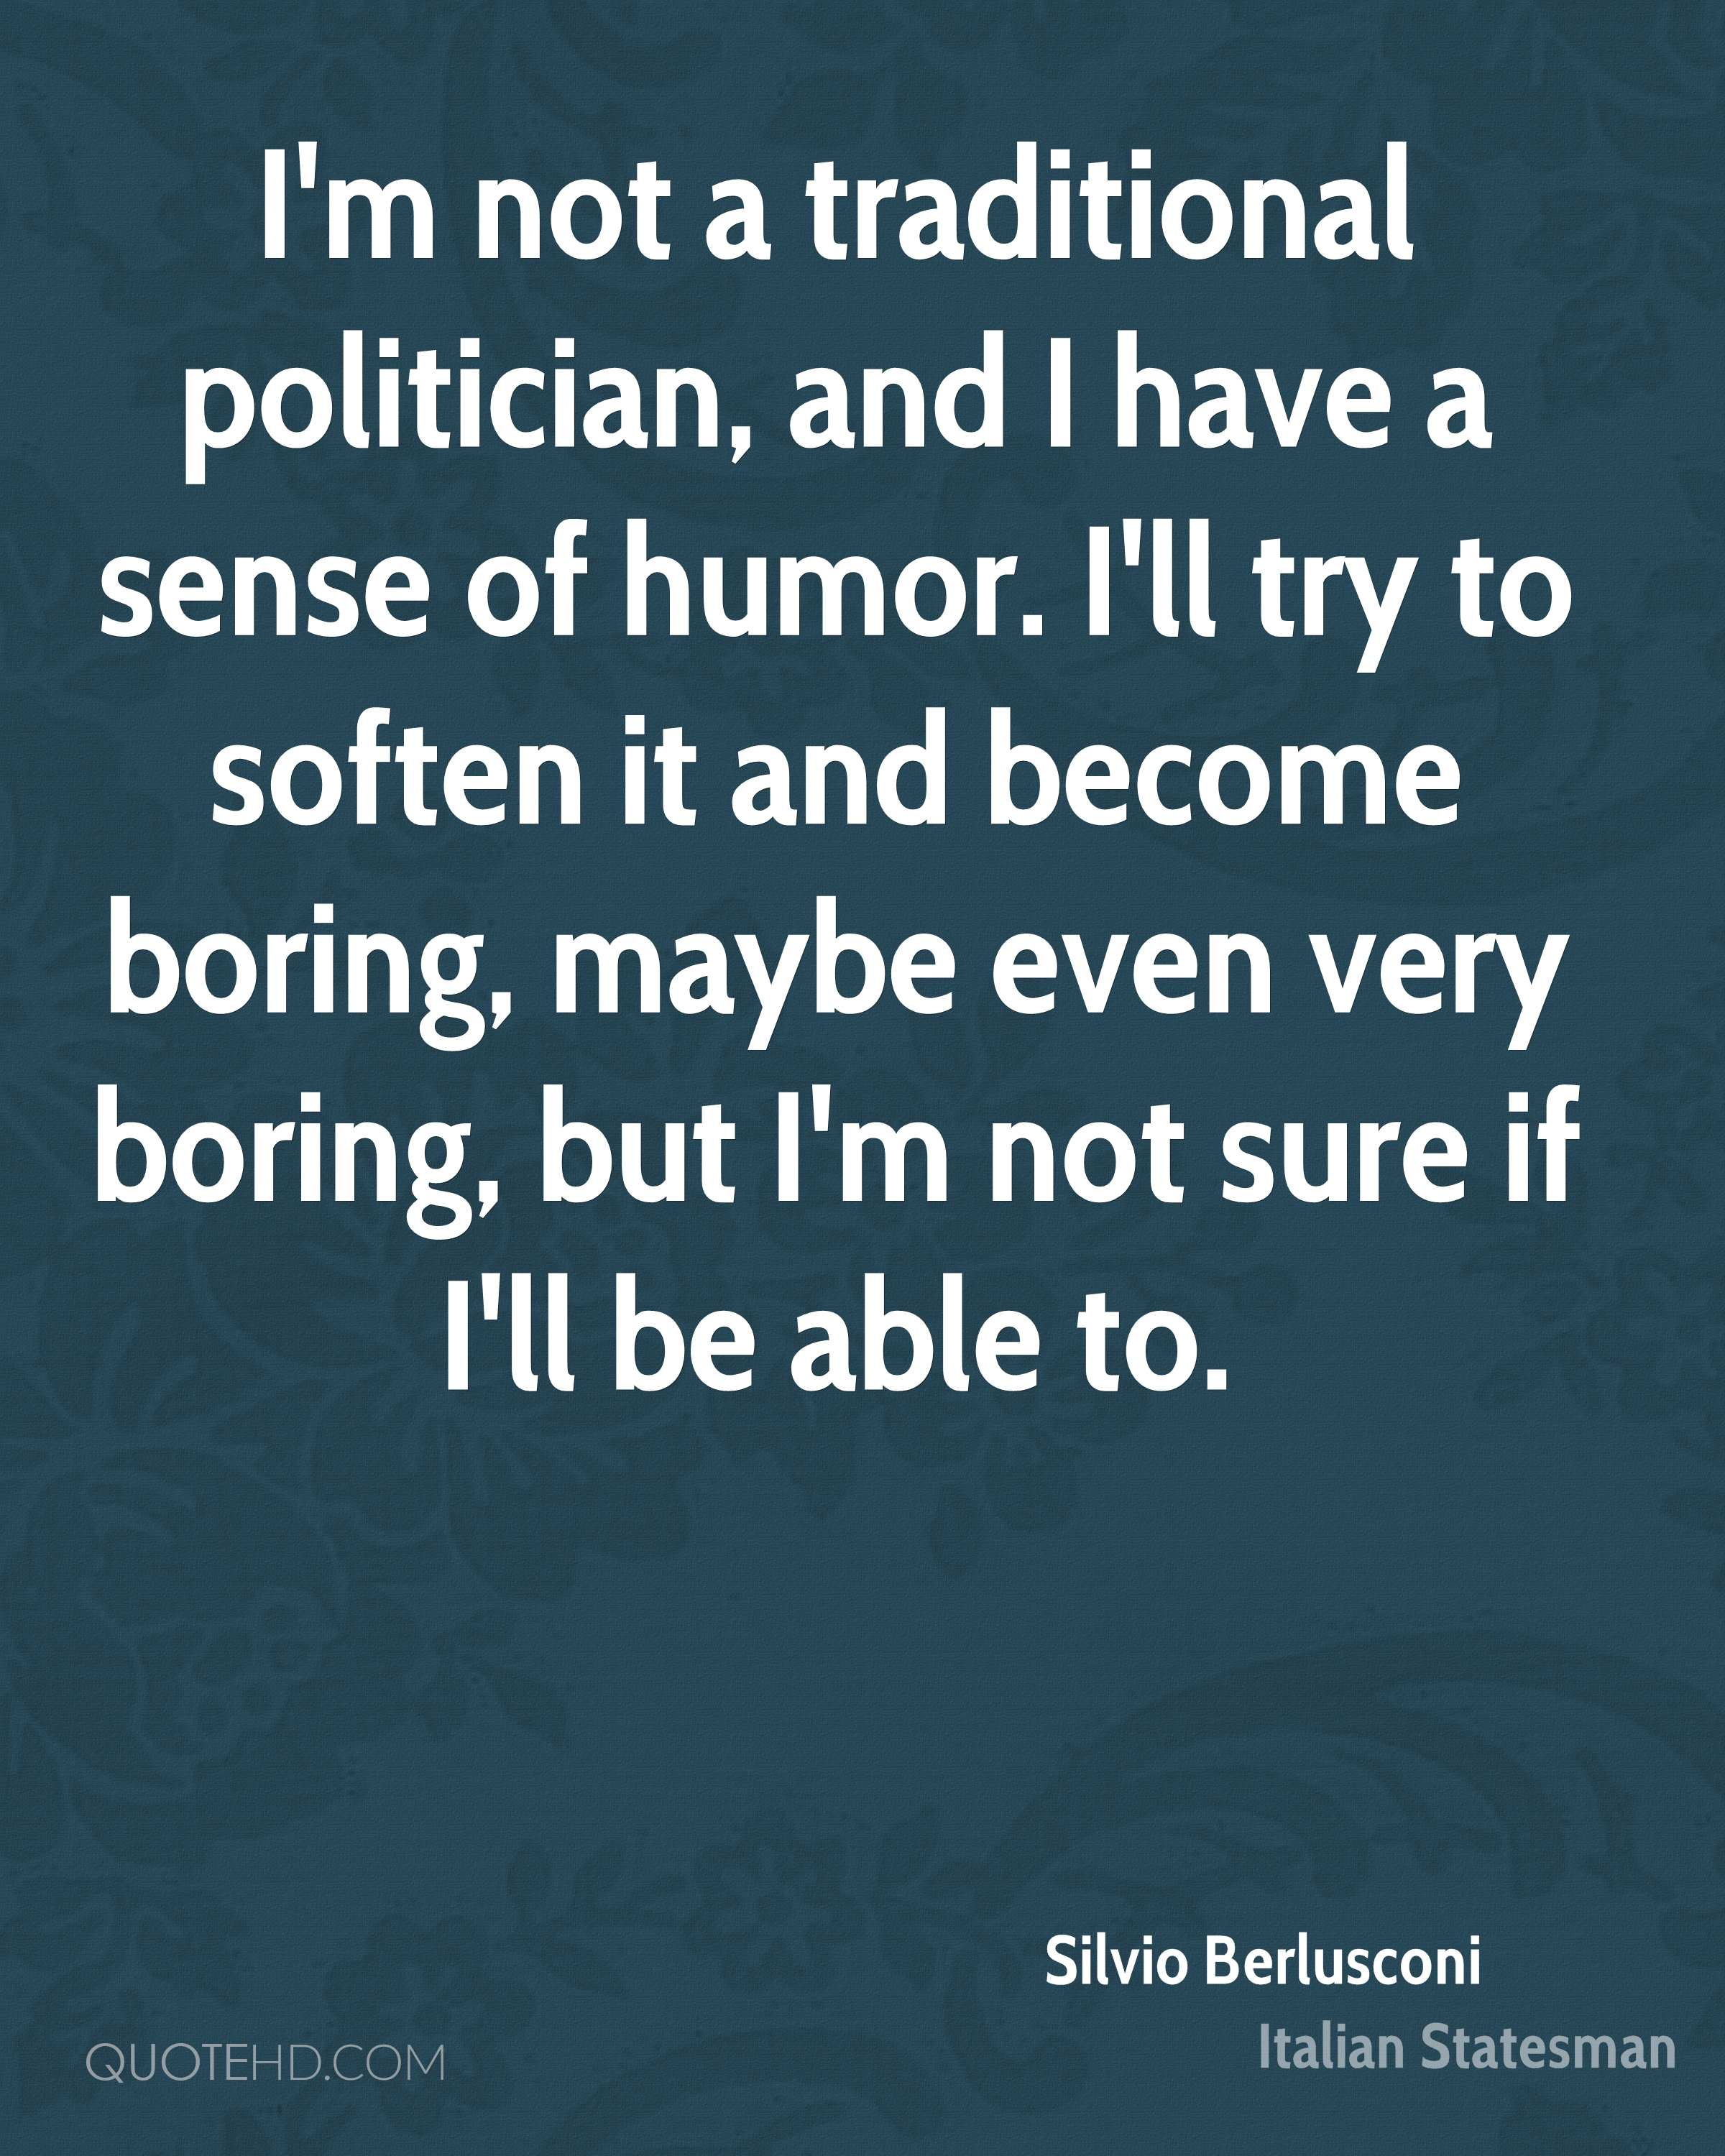 I'm not a traditional politician, and I have a sense of humor. I'll try to soften it and become boring, maybe even very boring, but I'm not sure if I'll be able to.